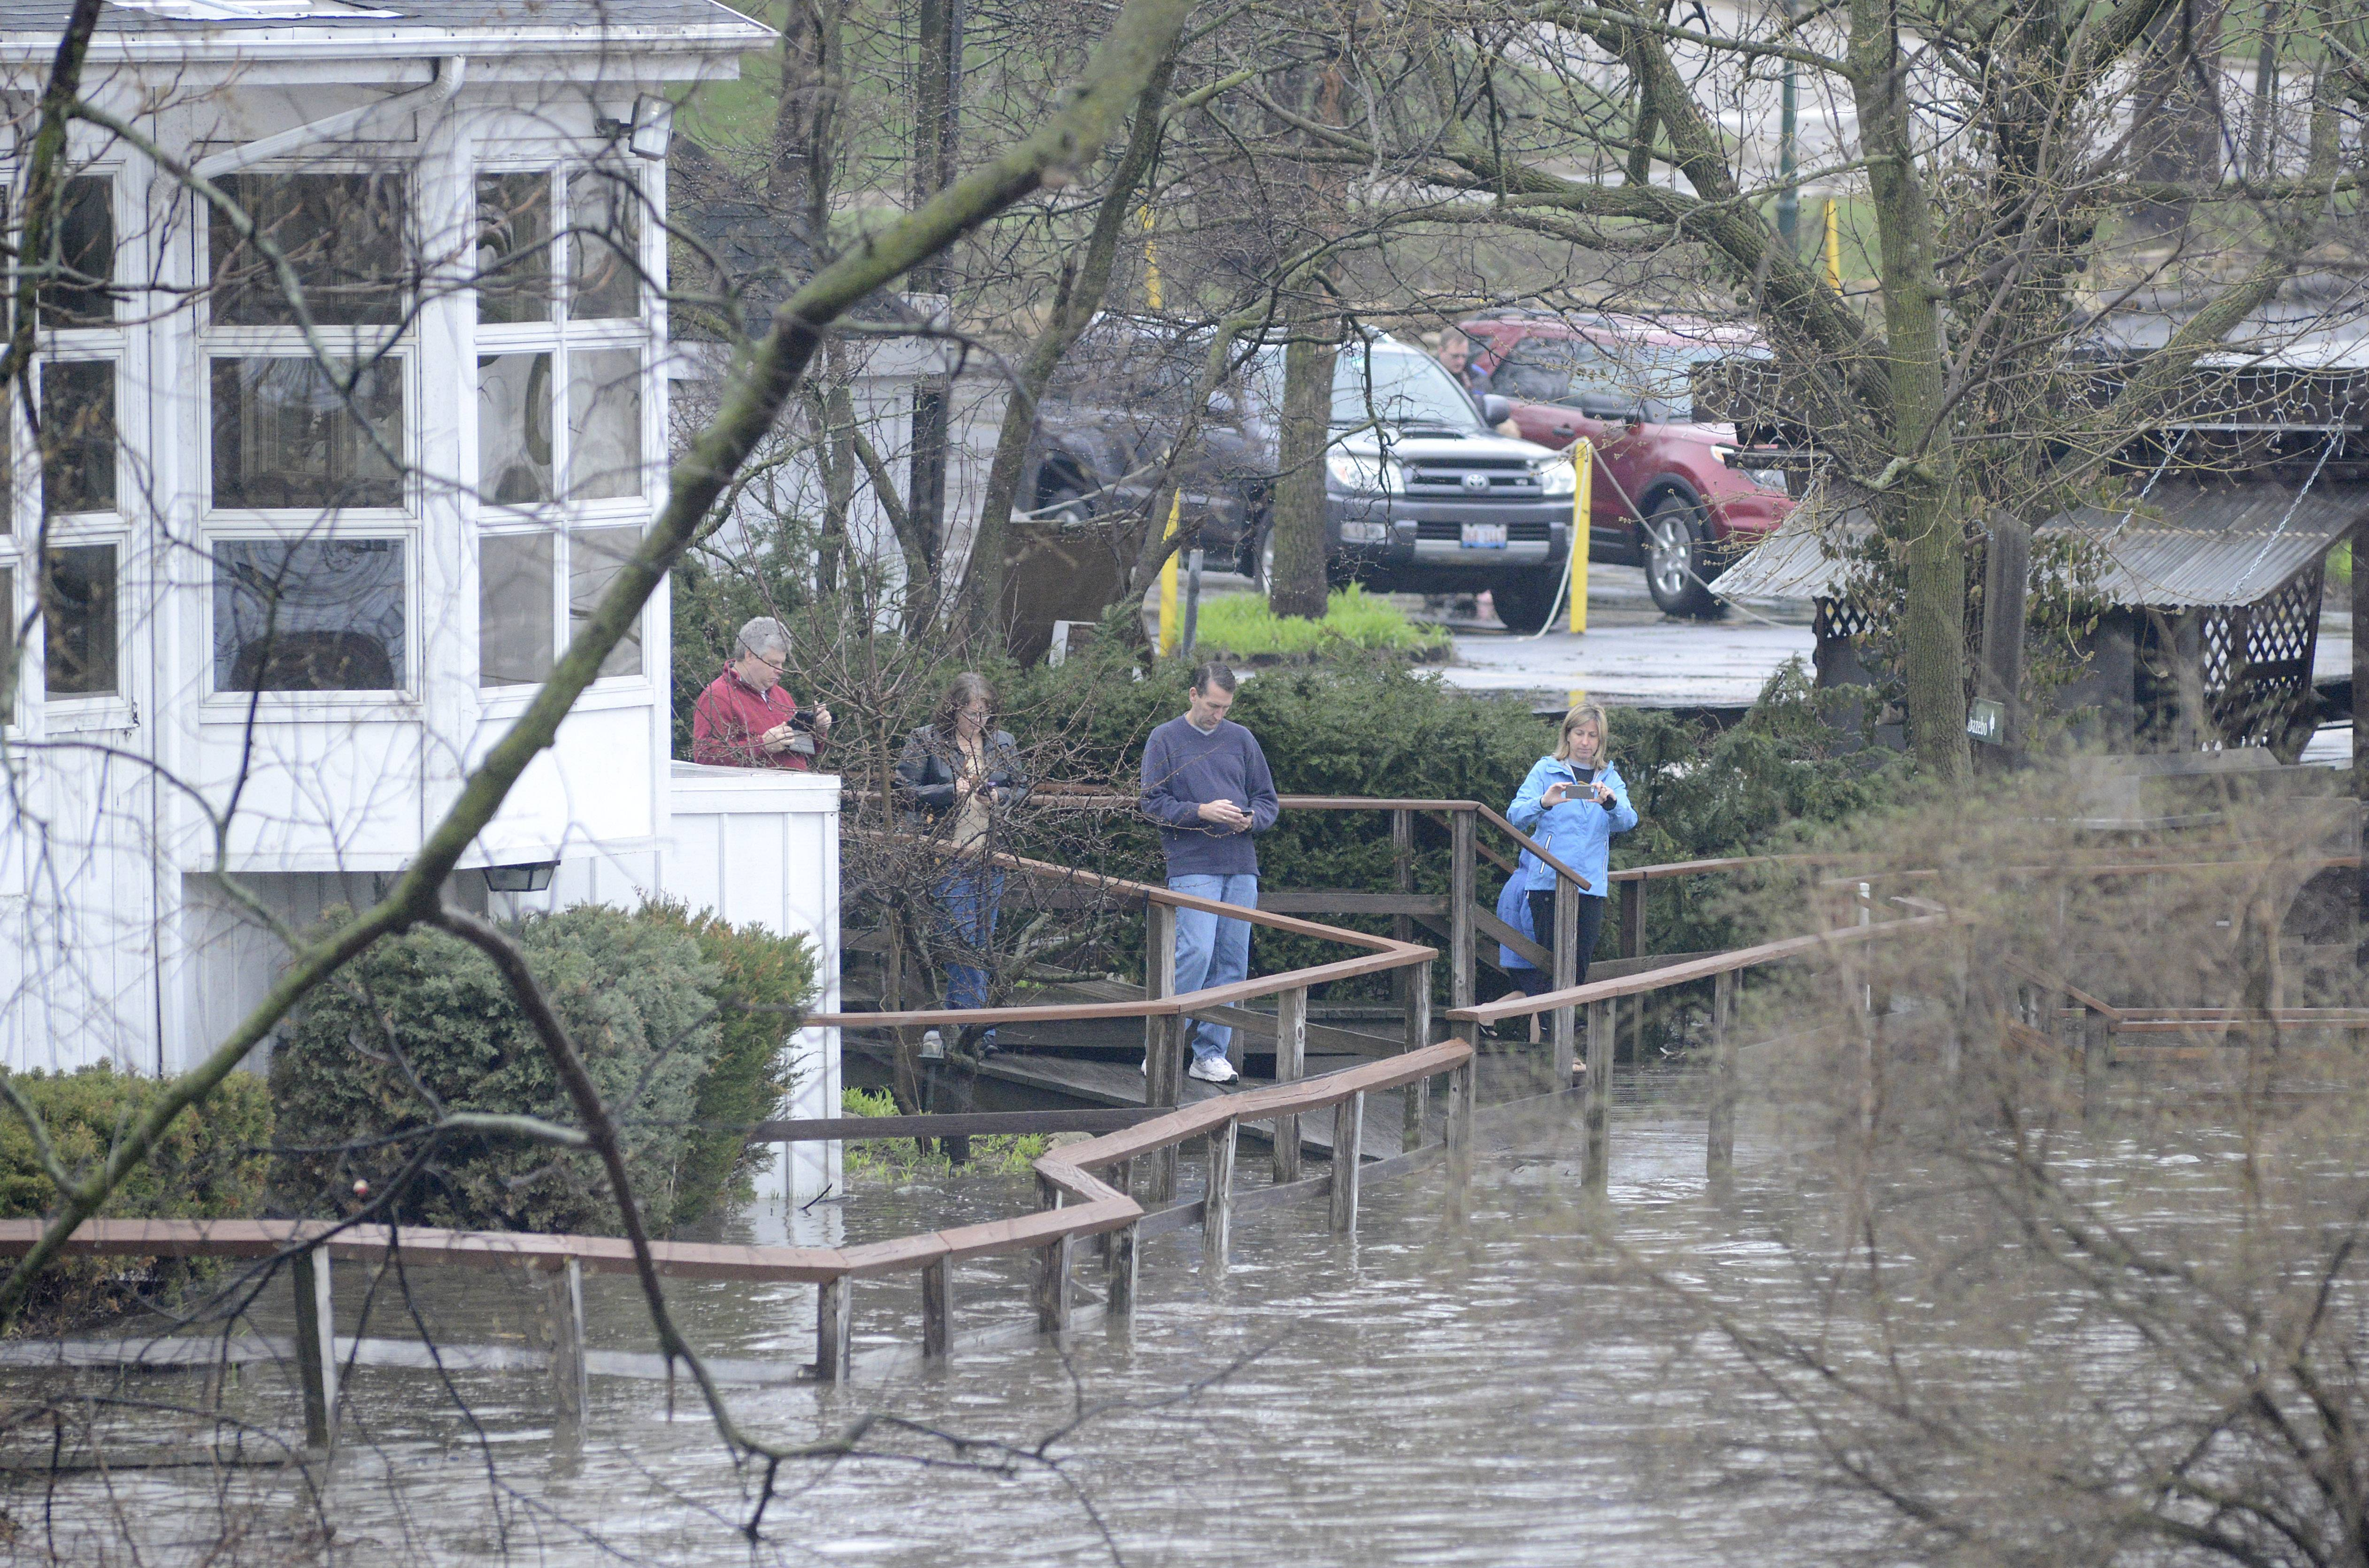 People gather on the boardwalk outside the shuttered Mill Race Inn next to Island Park in Geneva to photograph the floodwaters on Thursday, April 18. A constant flow of cars came into and out of the parking lot to get a glimpse of the racing waters.